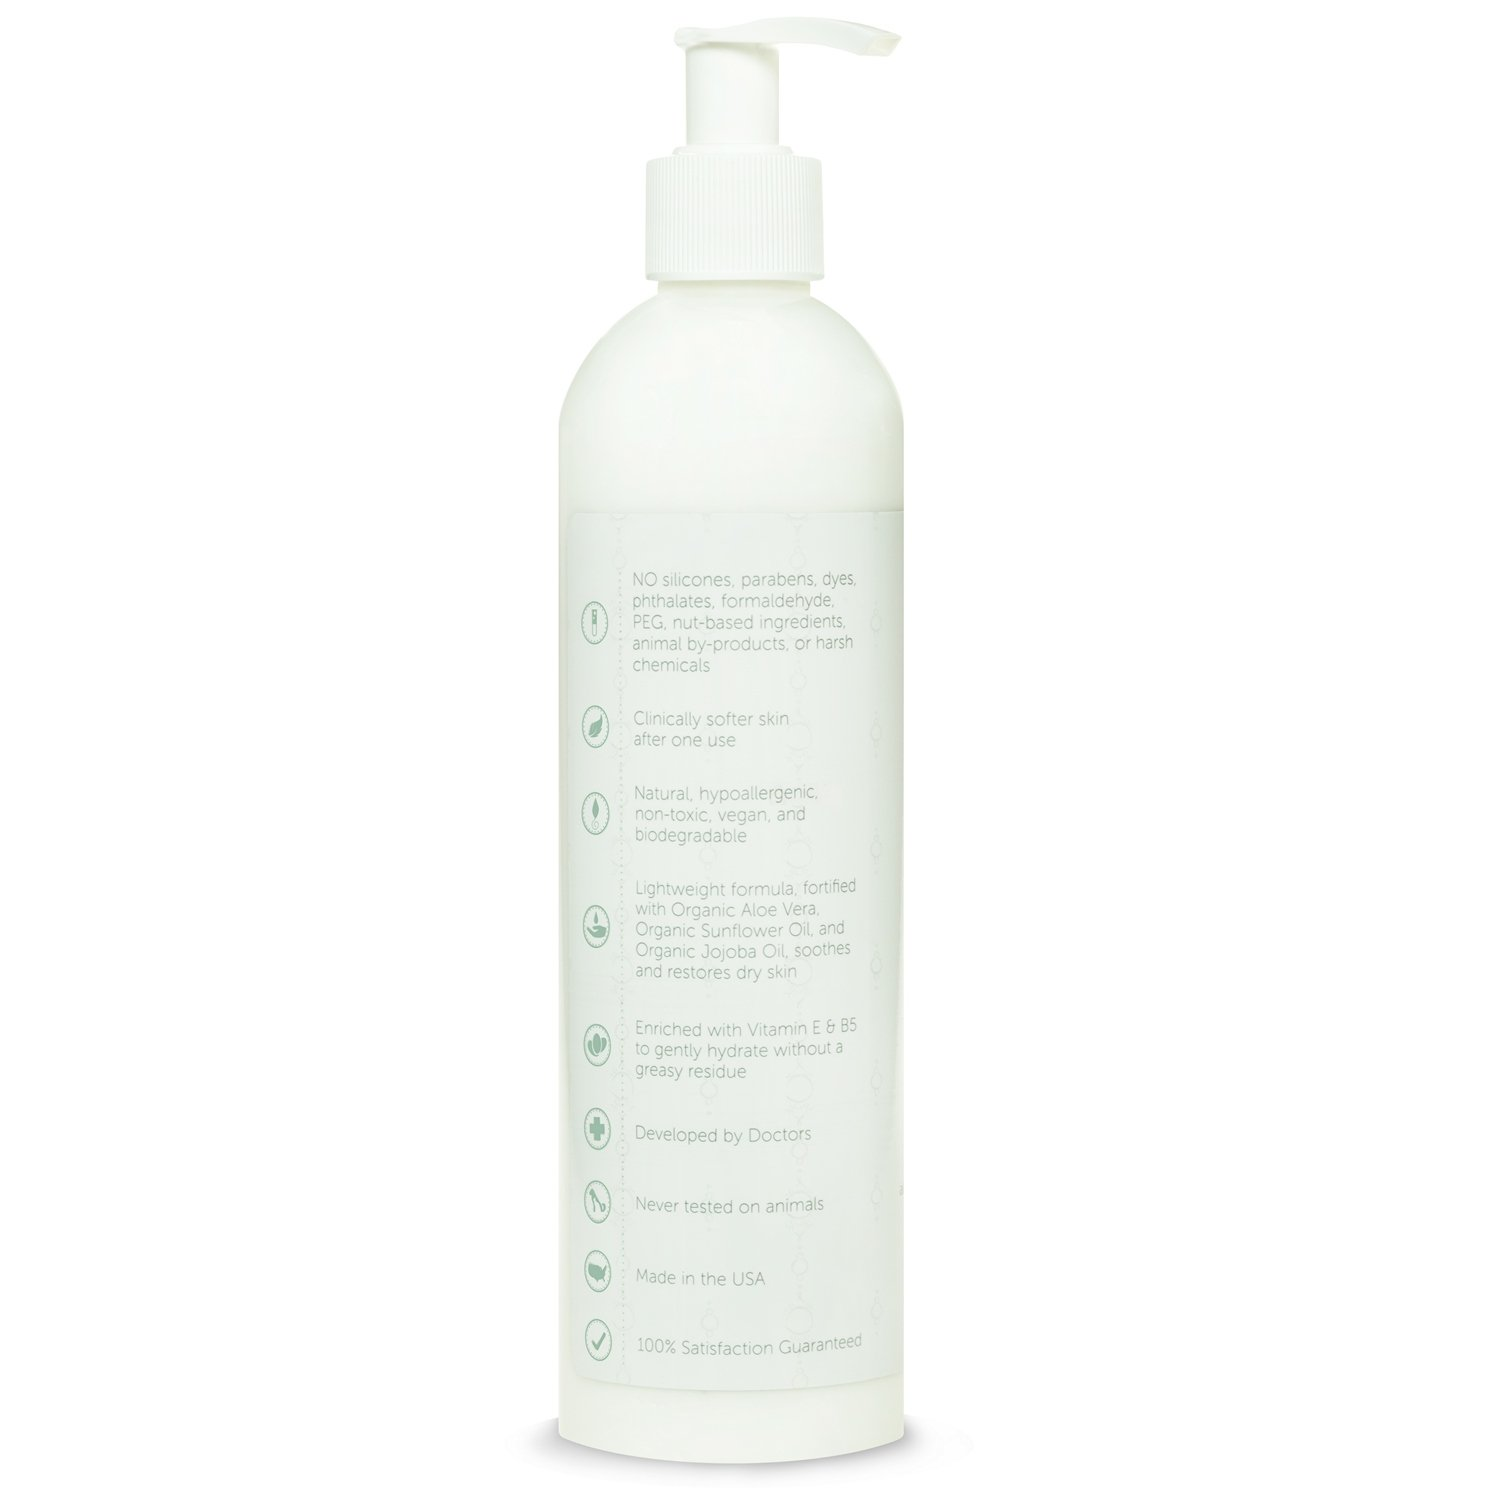 Puracy Organic Hand & Body Lotion, The BEST Natural Moisturizer, Unscented, All Skin Types, All Day Moisture, All Natural, 12 Ounce Bottle by Puracy (Image #5)